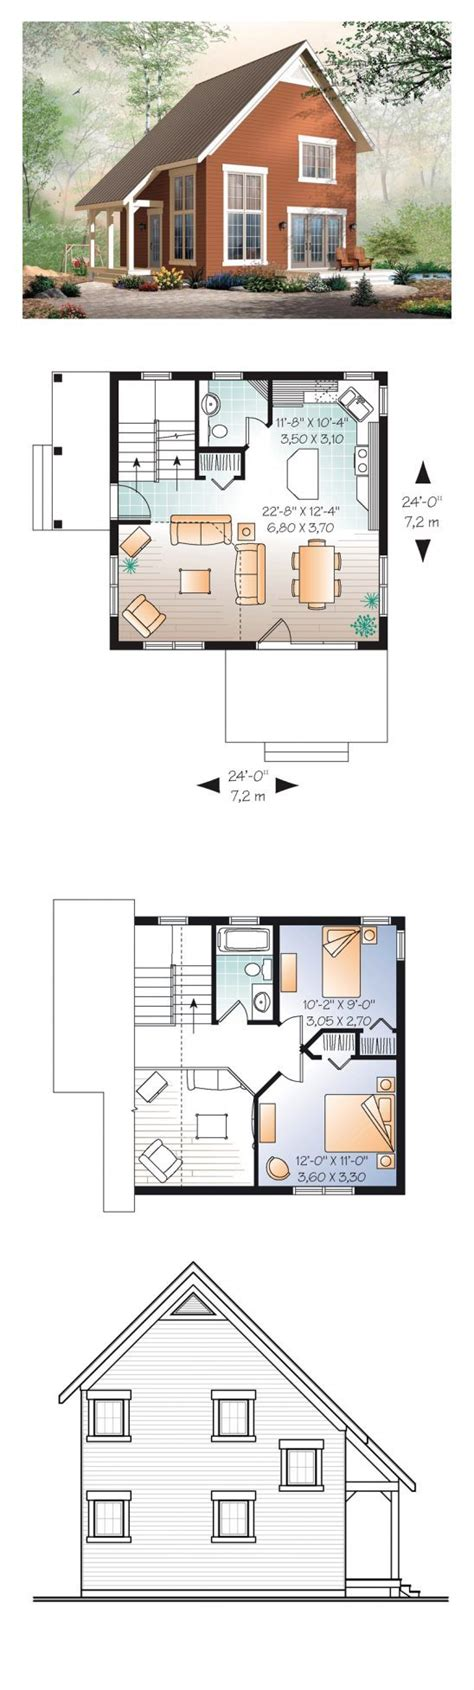 house plans with vaulted great room house plans with vaulted ceilings integralbook com